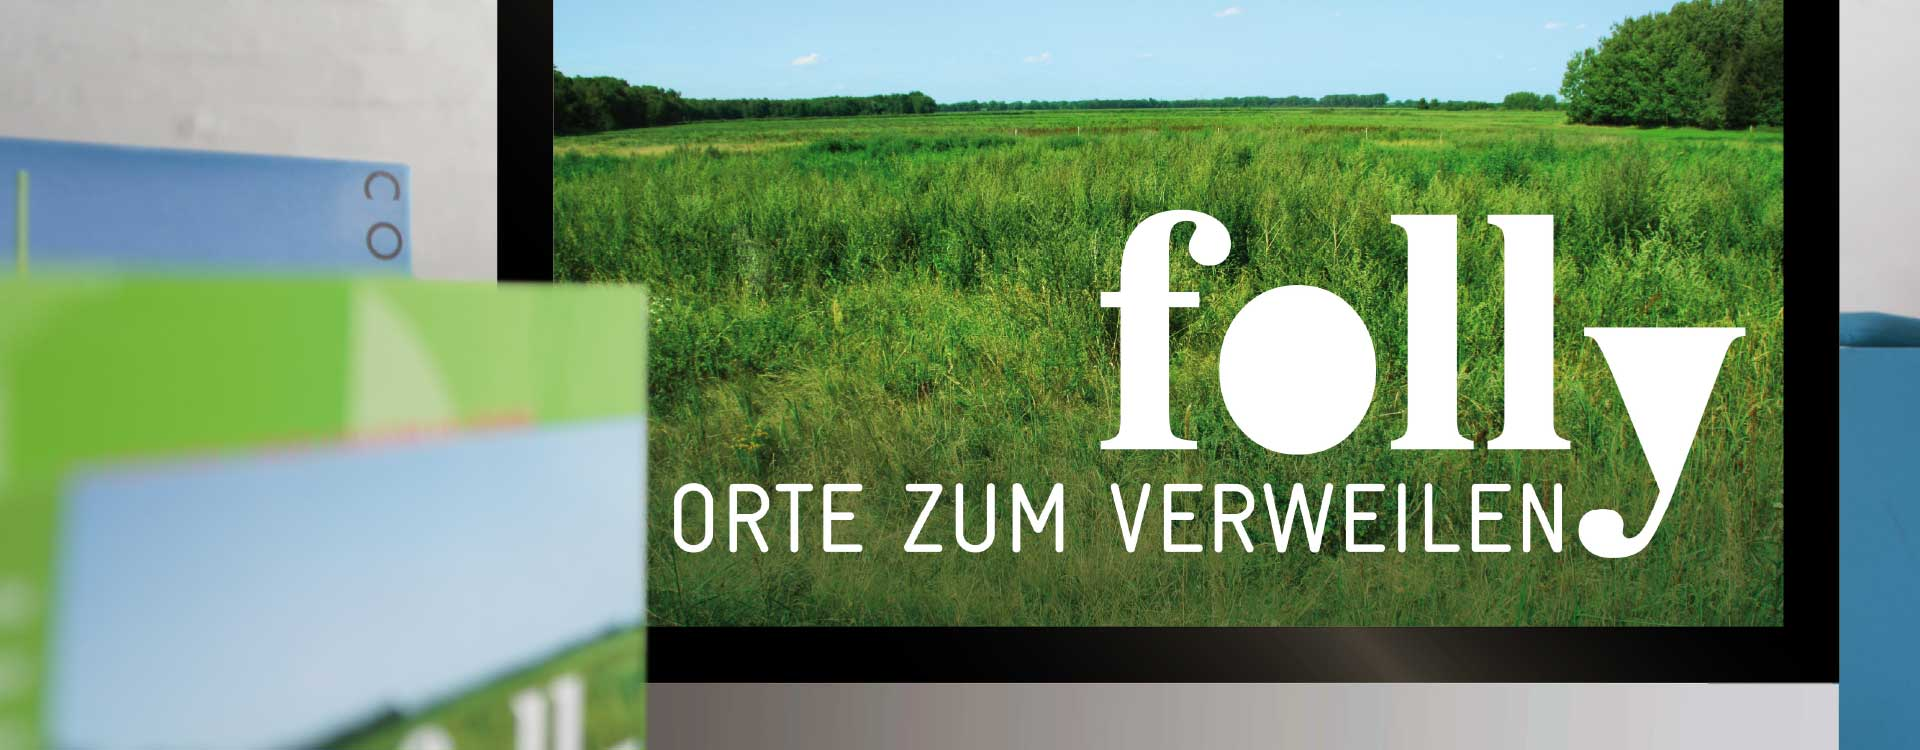 Screen design for the exhibition Folly: Places to Linger; Design: Kattrin Richter   Graphic Design Studio